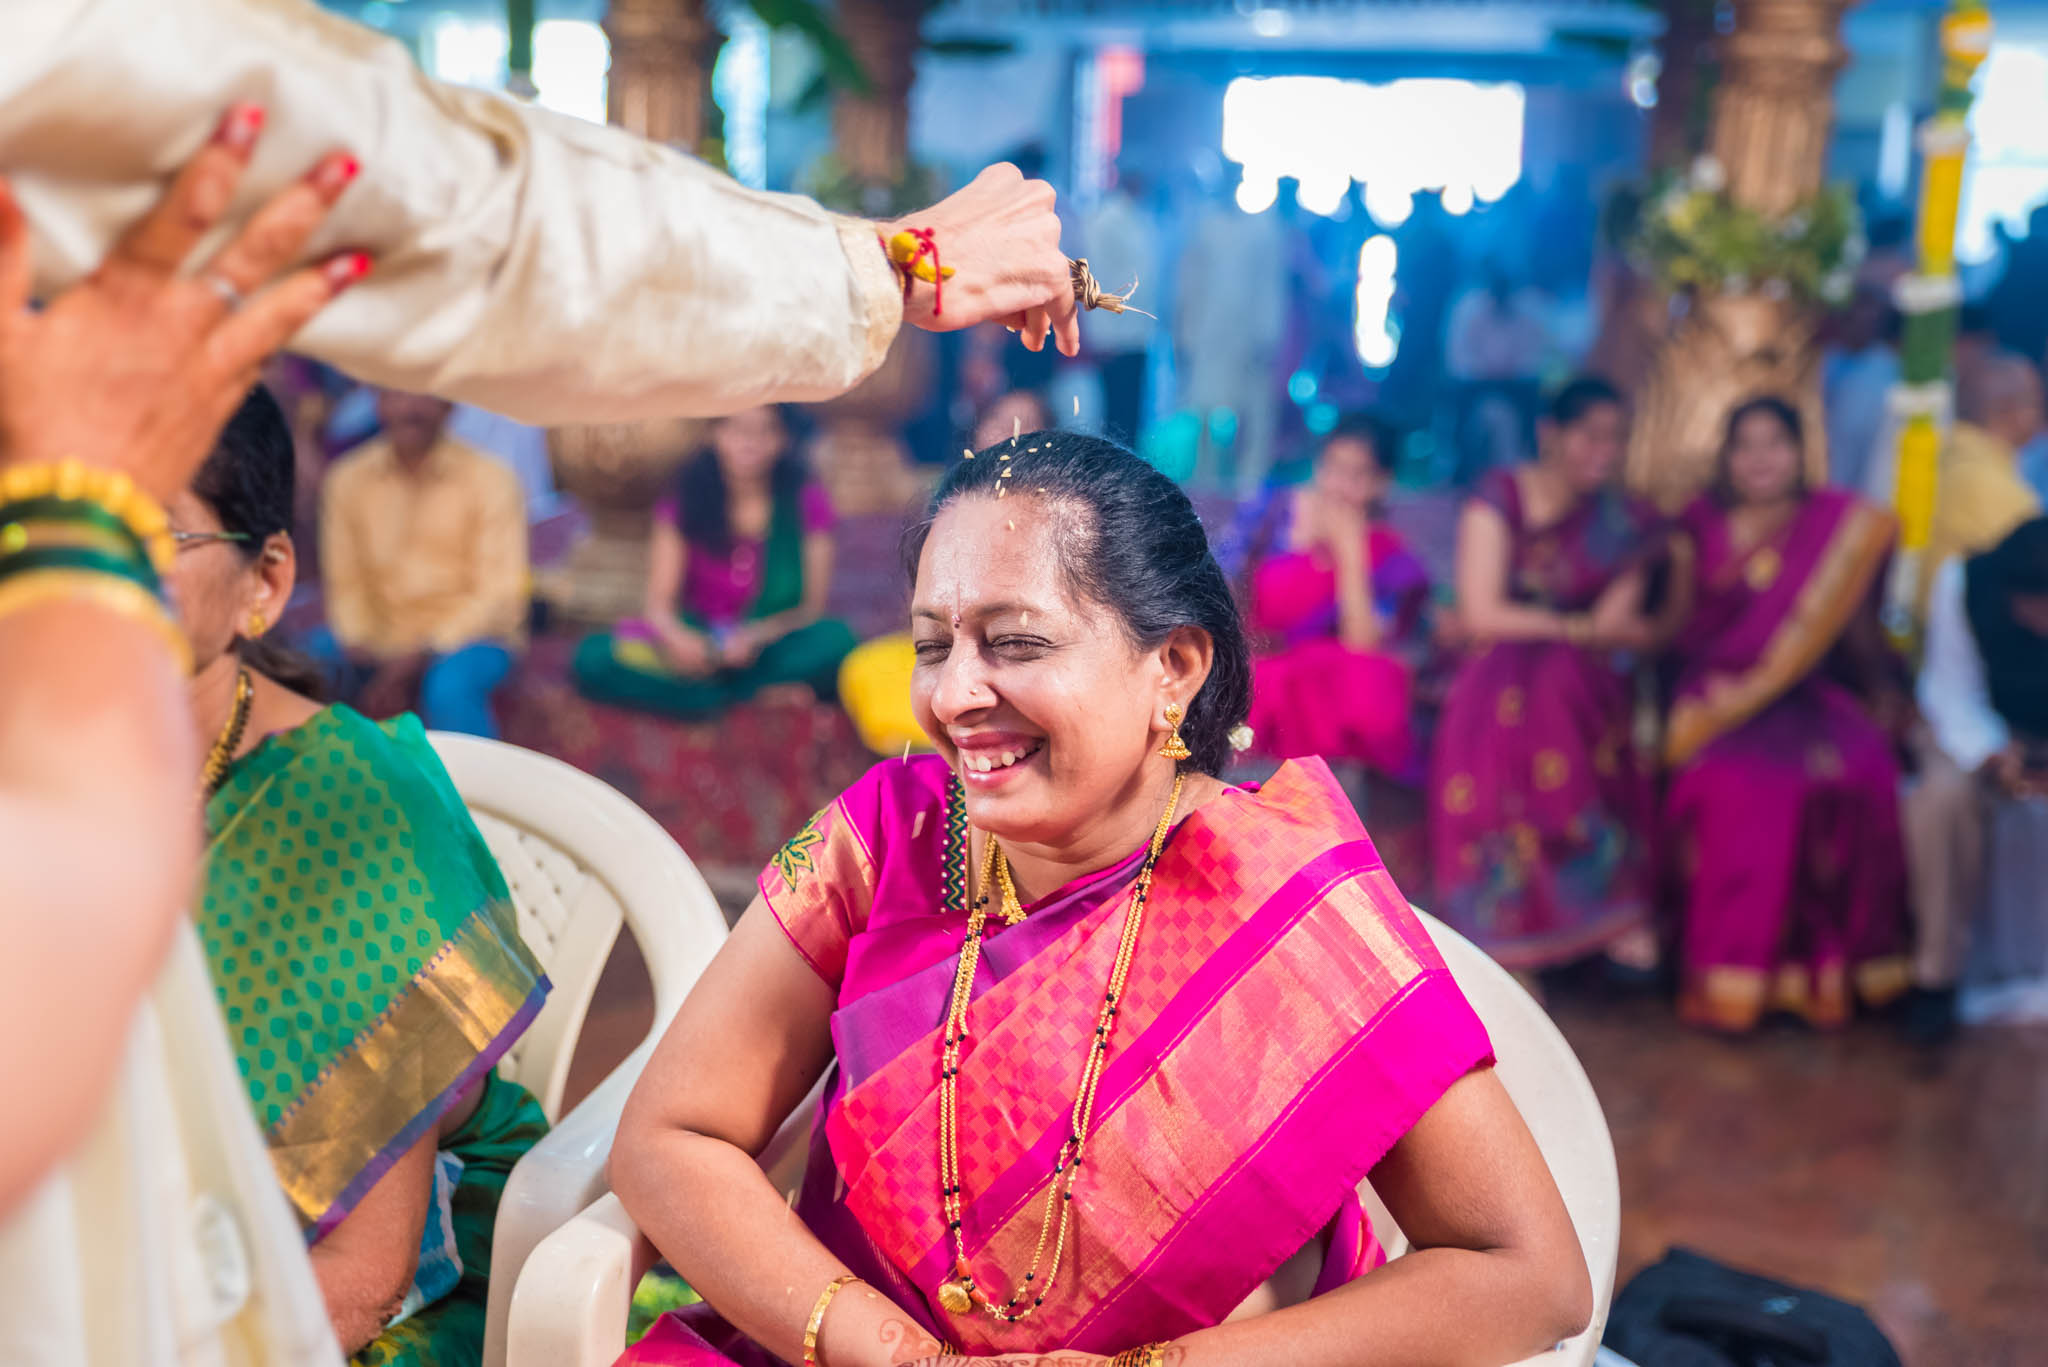 WhatKnot-Candid-Wedding-Photography-Mumbai-Bangalore-198